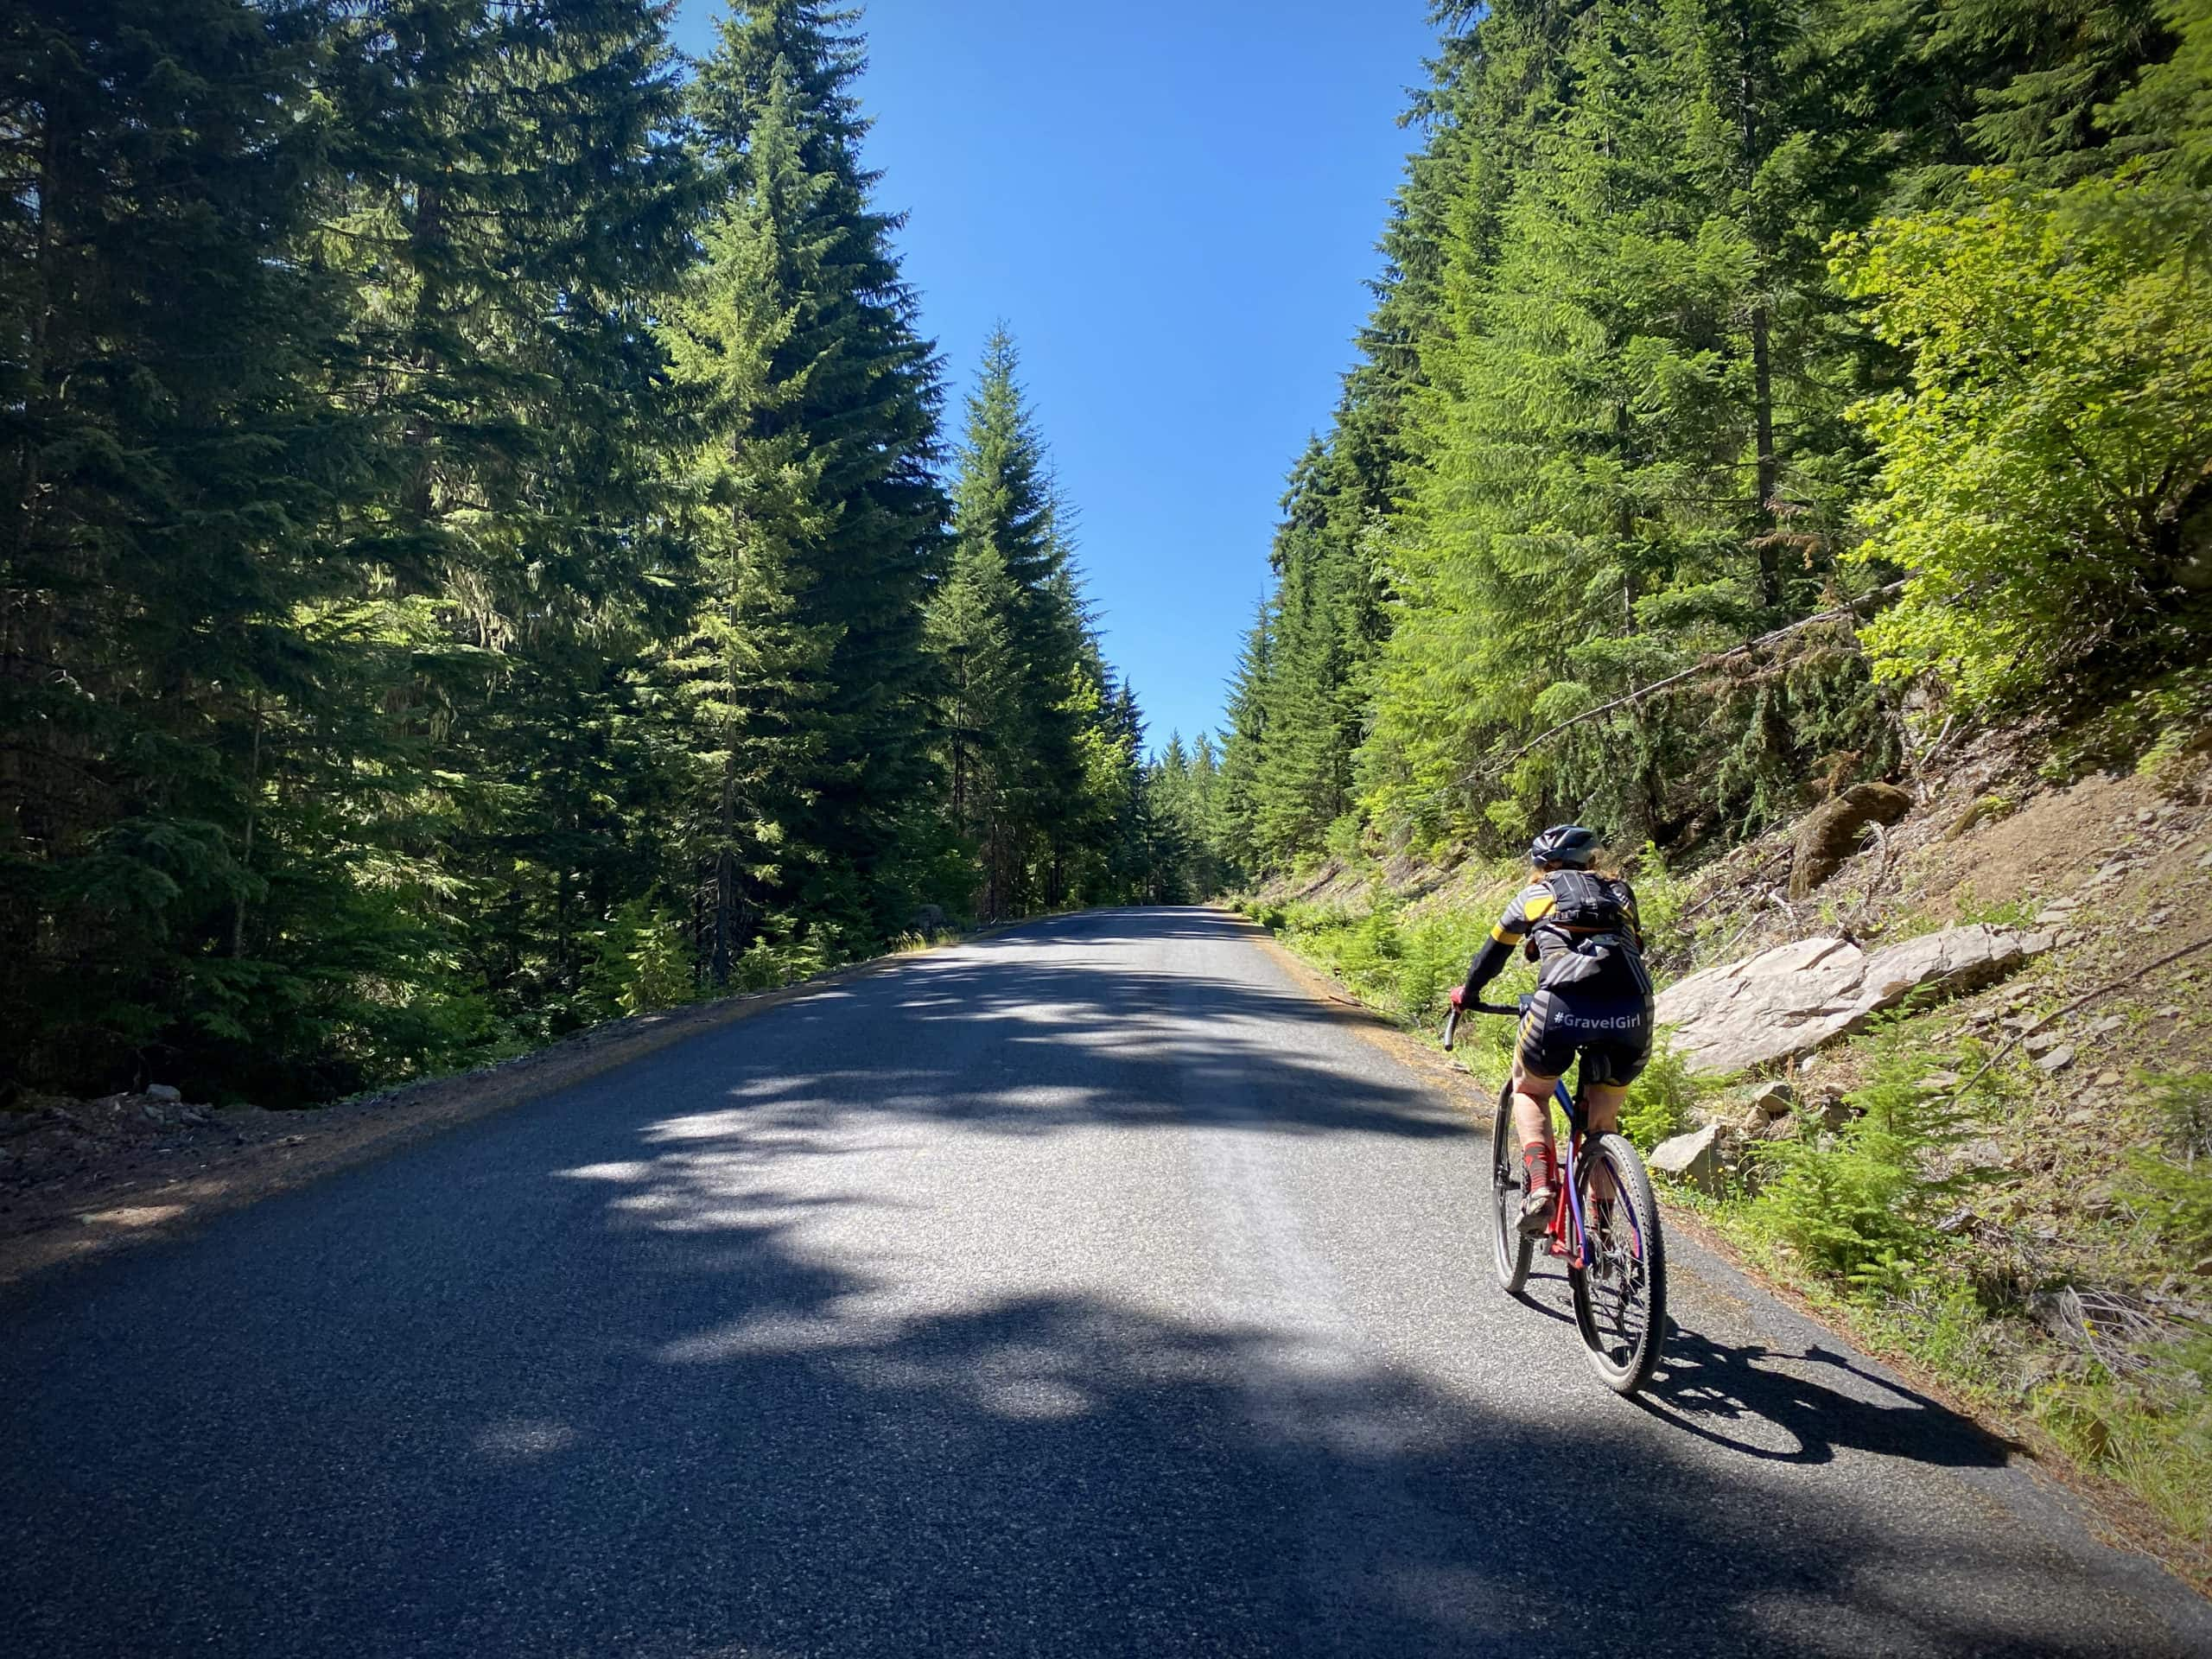 Cyclist riding on 2-lane paved road, Cedar Burn road, in the Mt Hood National forest.